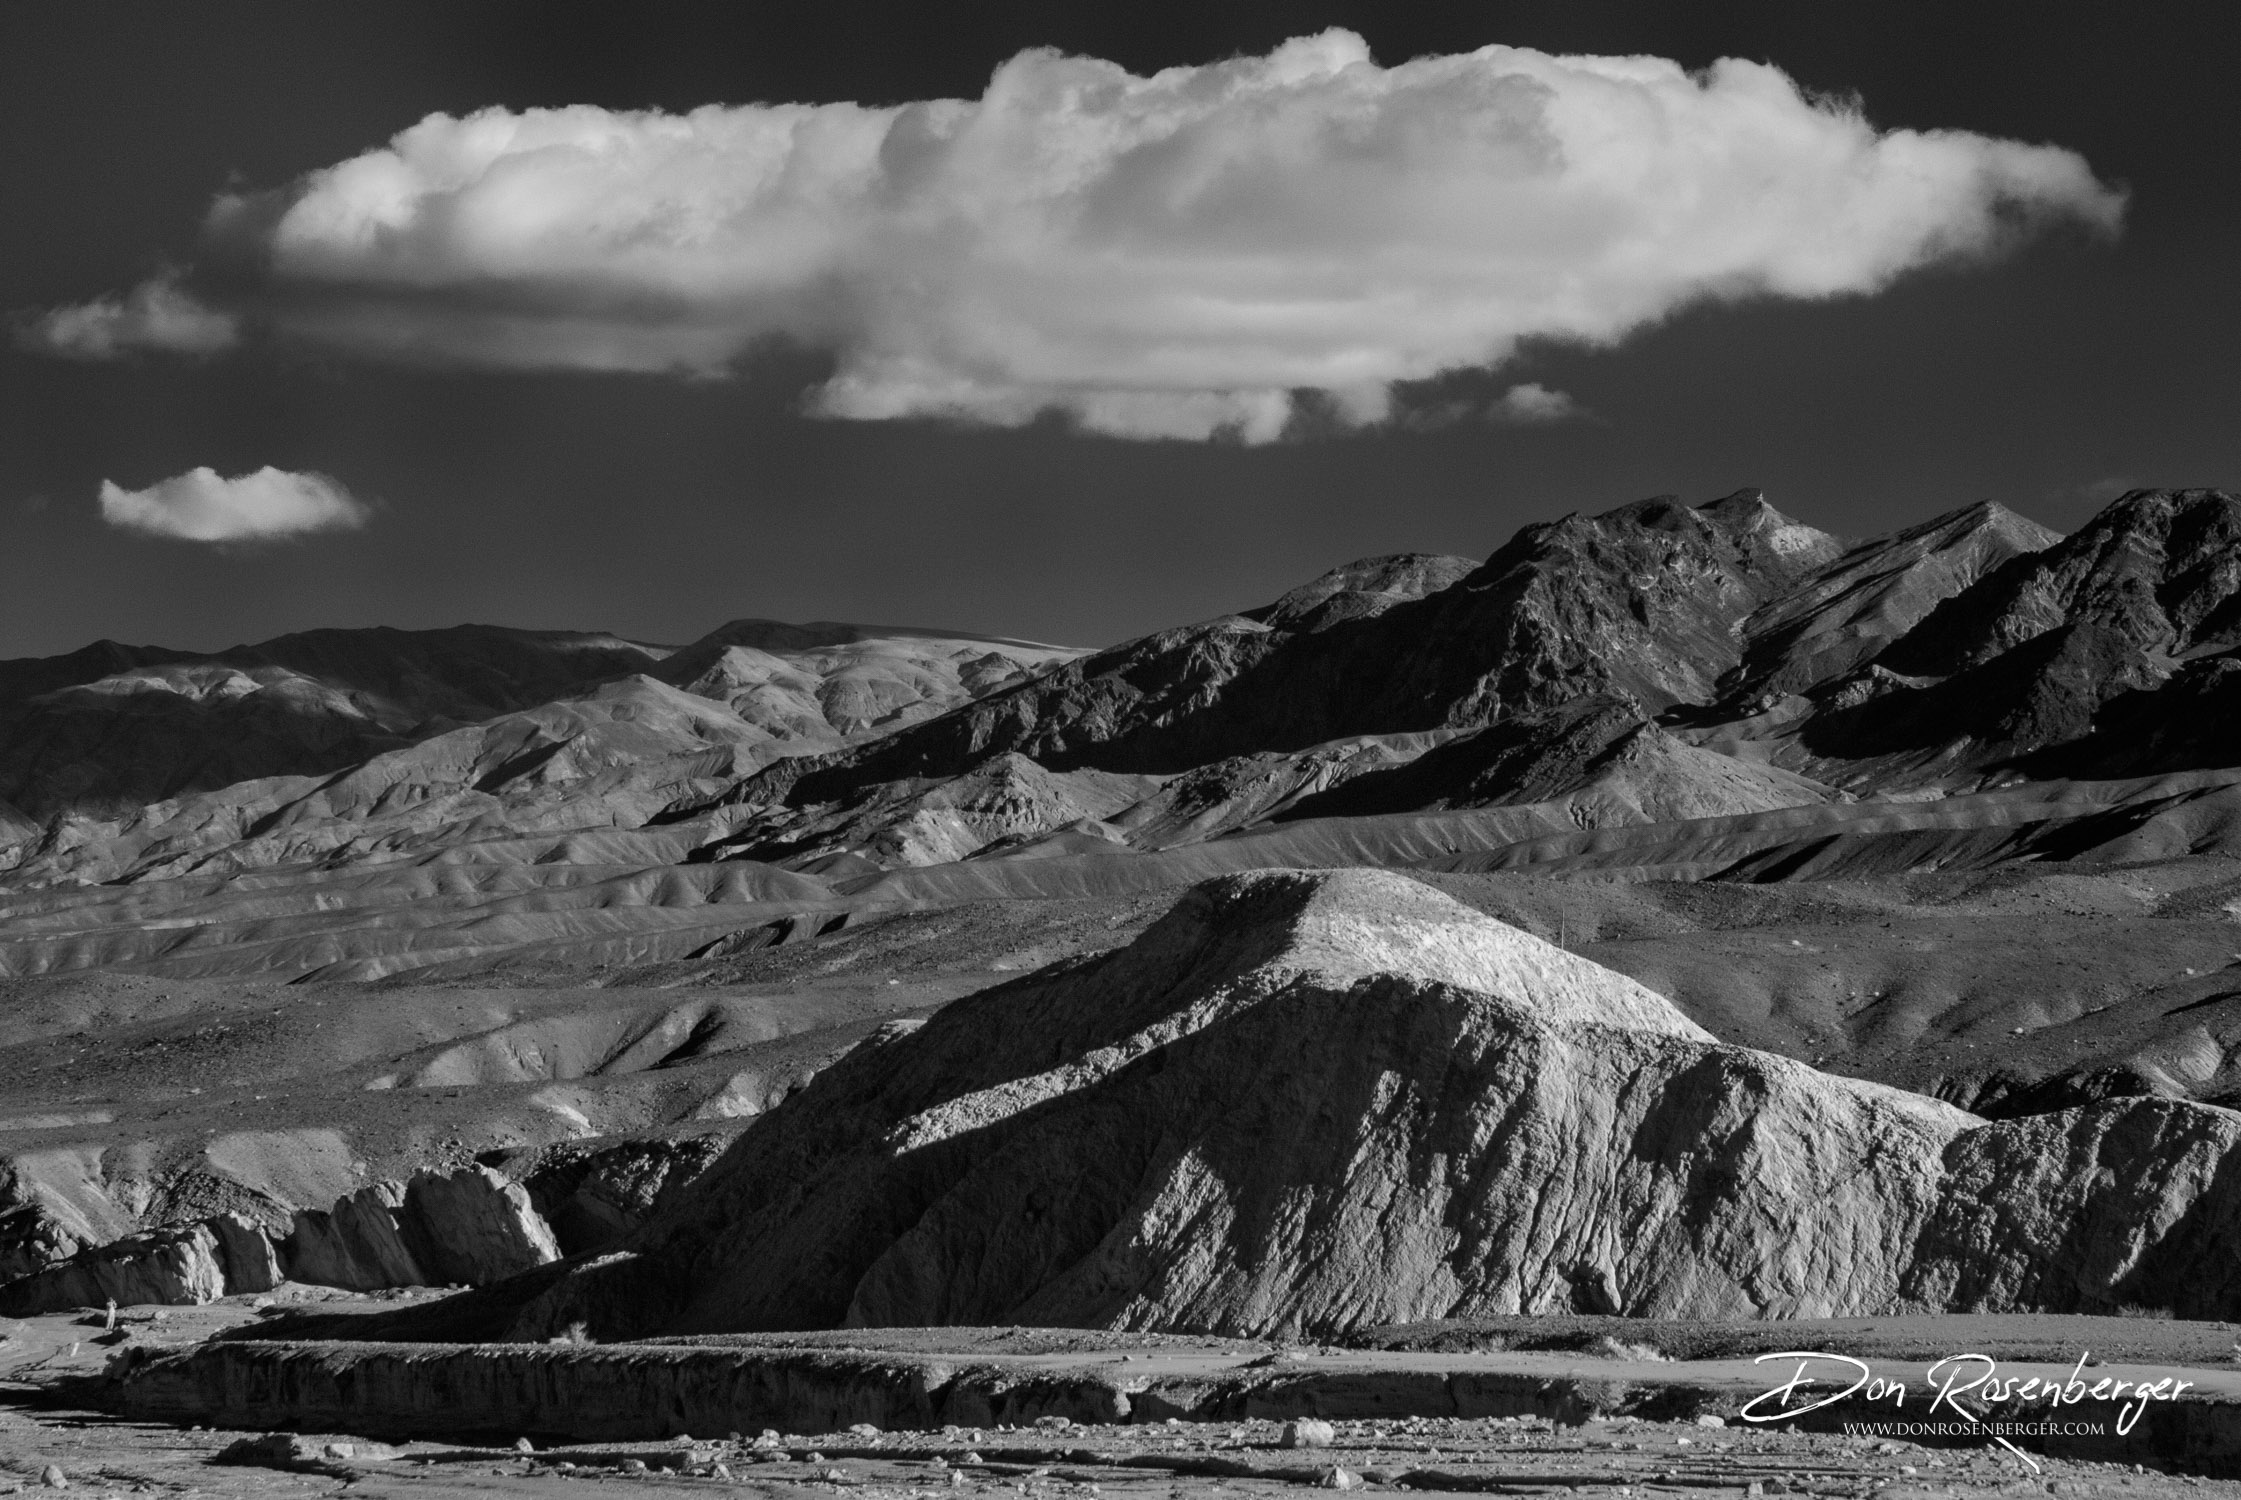 The Desert in Infrared